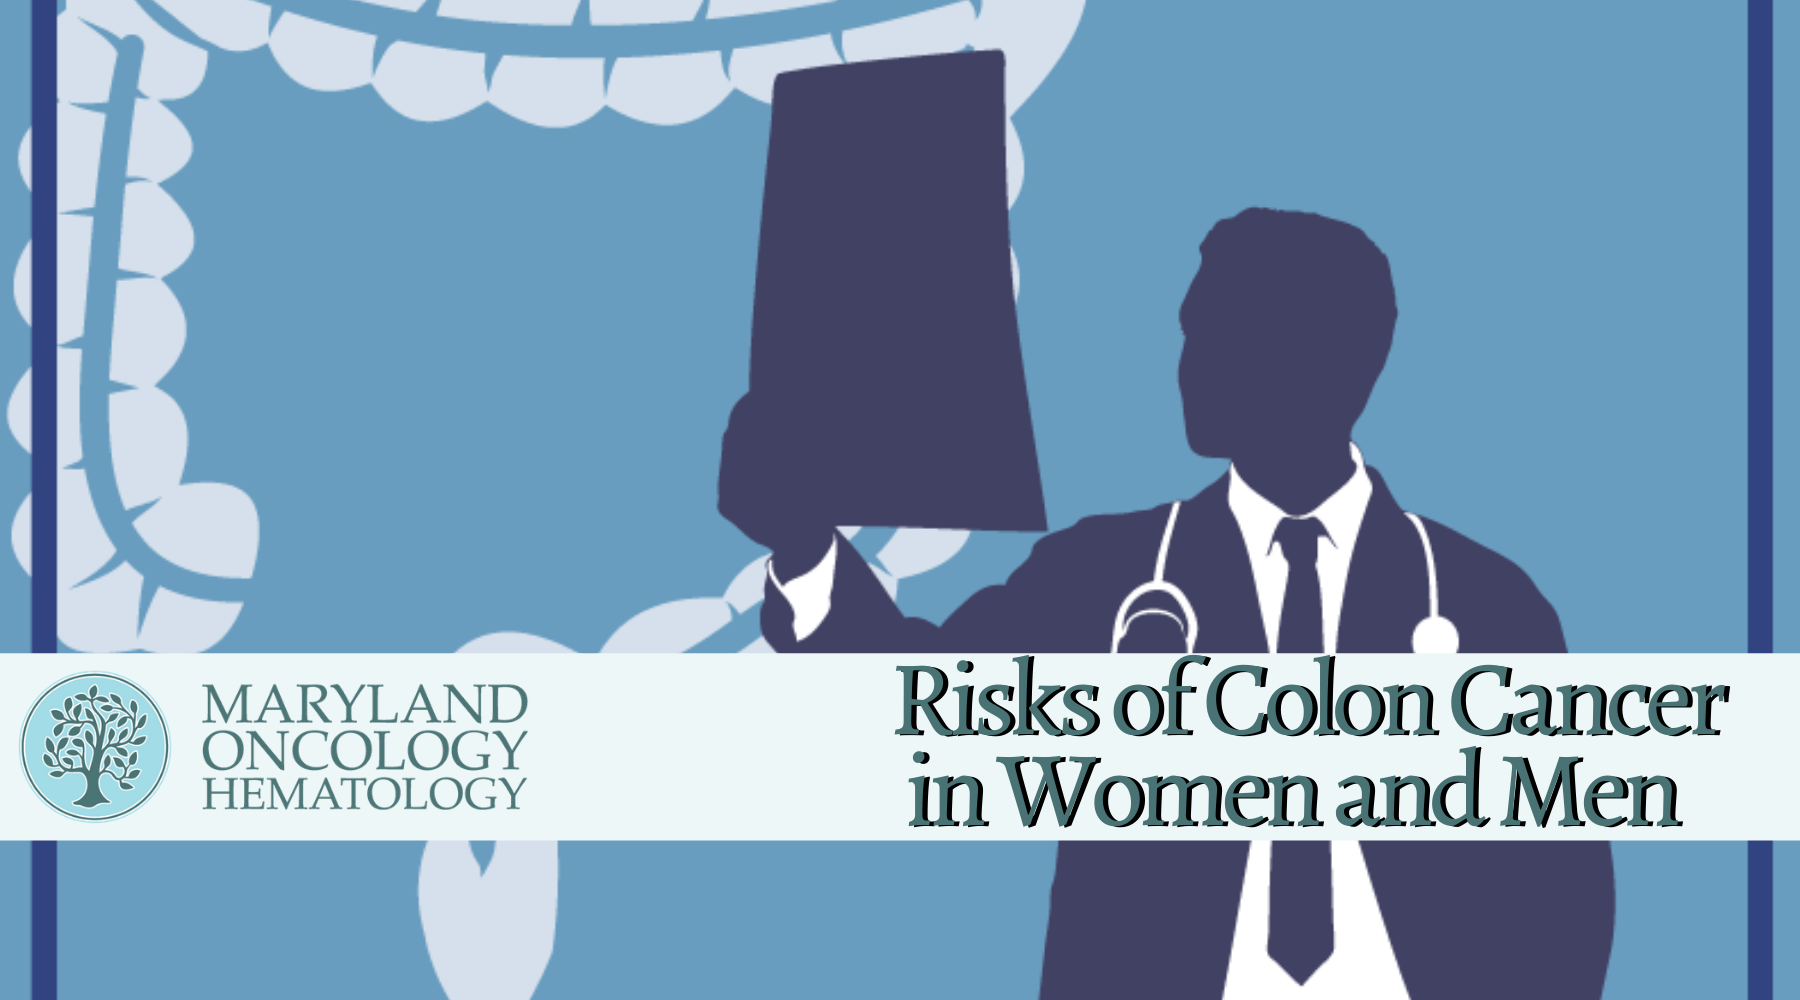 Risks Of Colon Cancer In Women And Men By Maryland Oncology Hematology Oncology Today Aug 2020 Medium